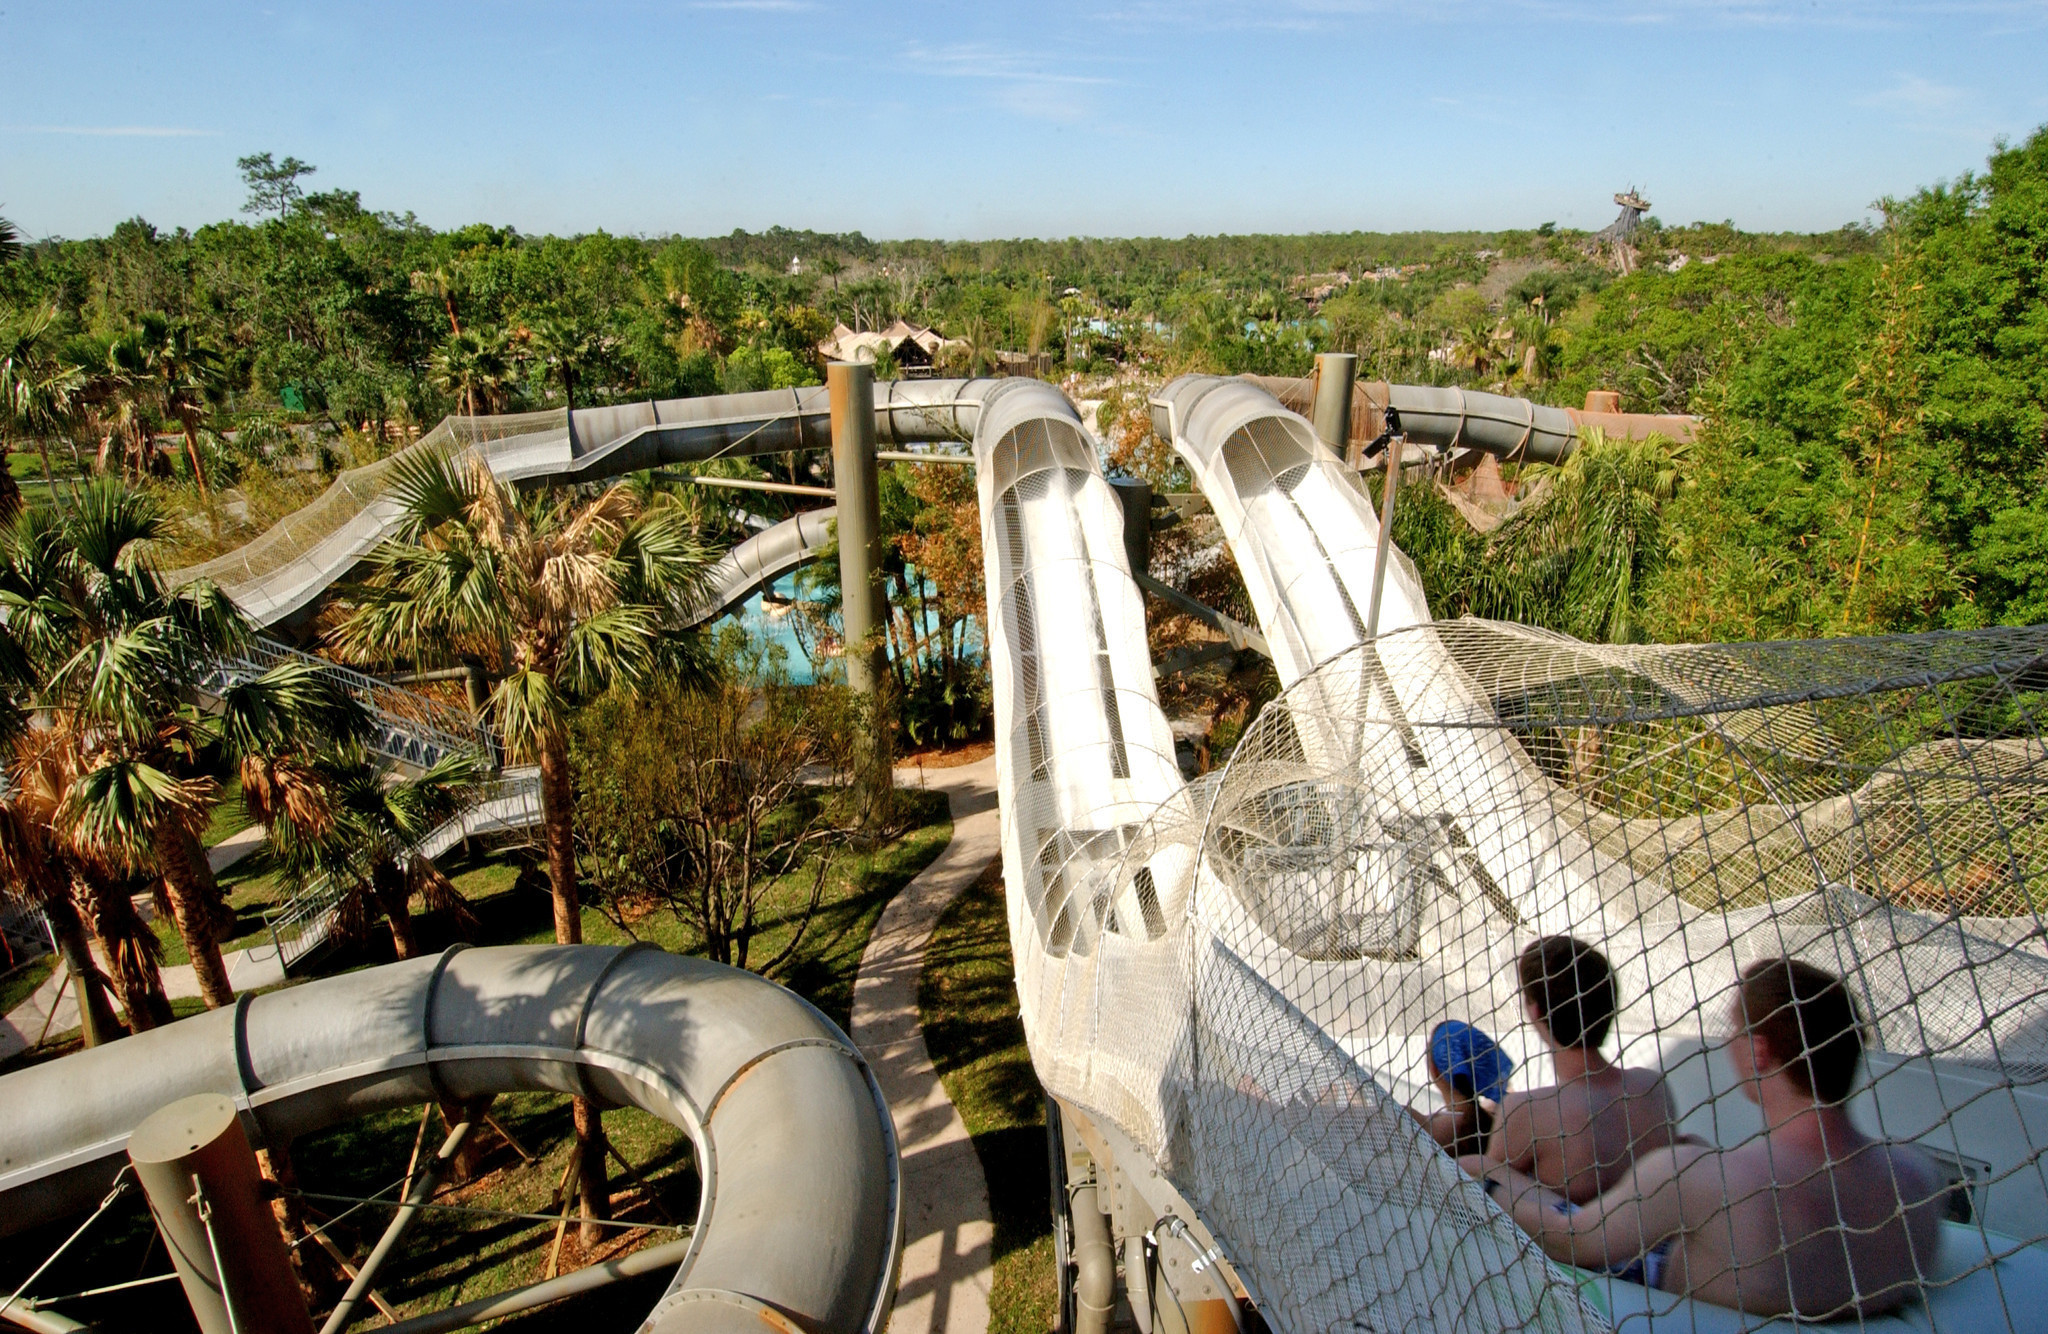 lagoon vs disneyland Disney's typhoon lagoon hours  10:00 am to 5:00 pm disney's blizzard beach hours  discover frosty fun for the whole family at disney's blizzard beach water .